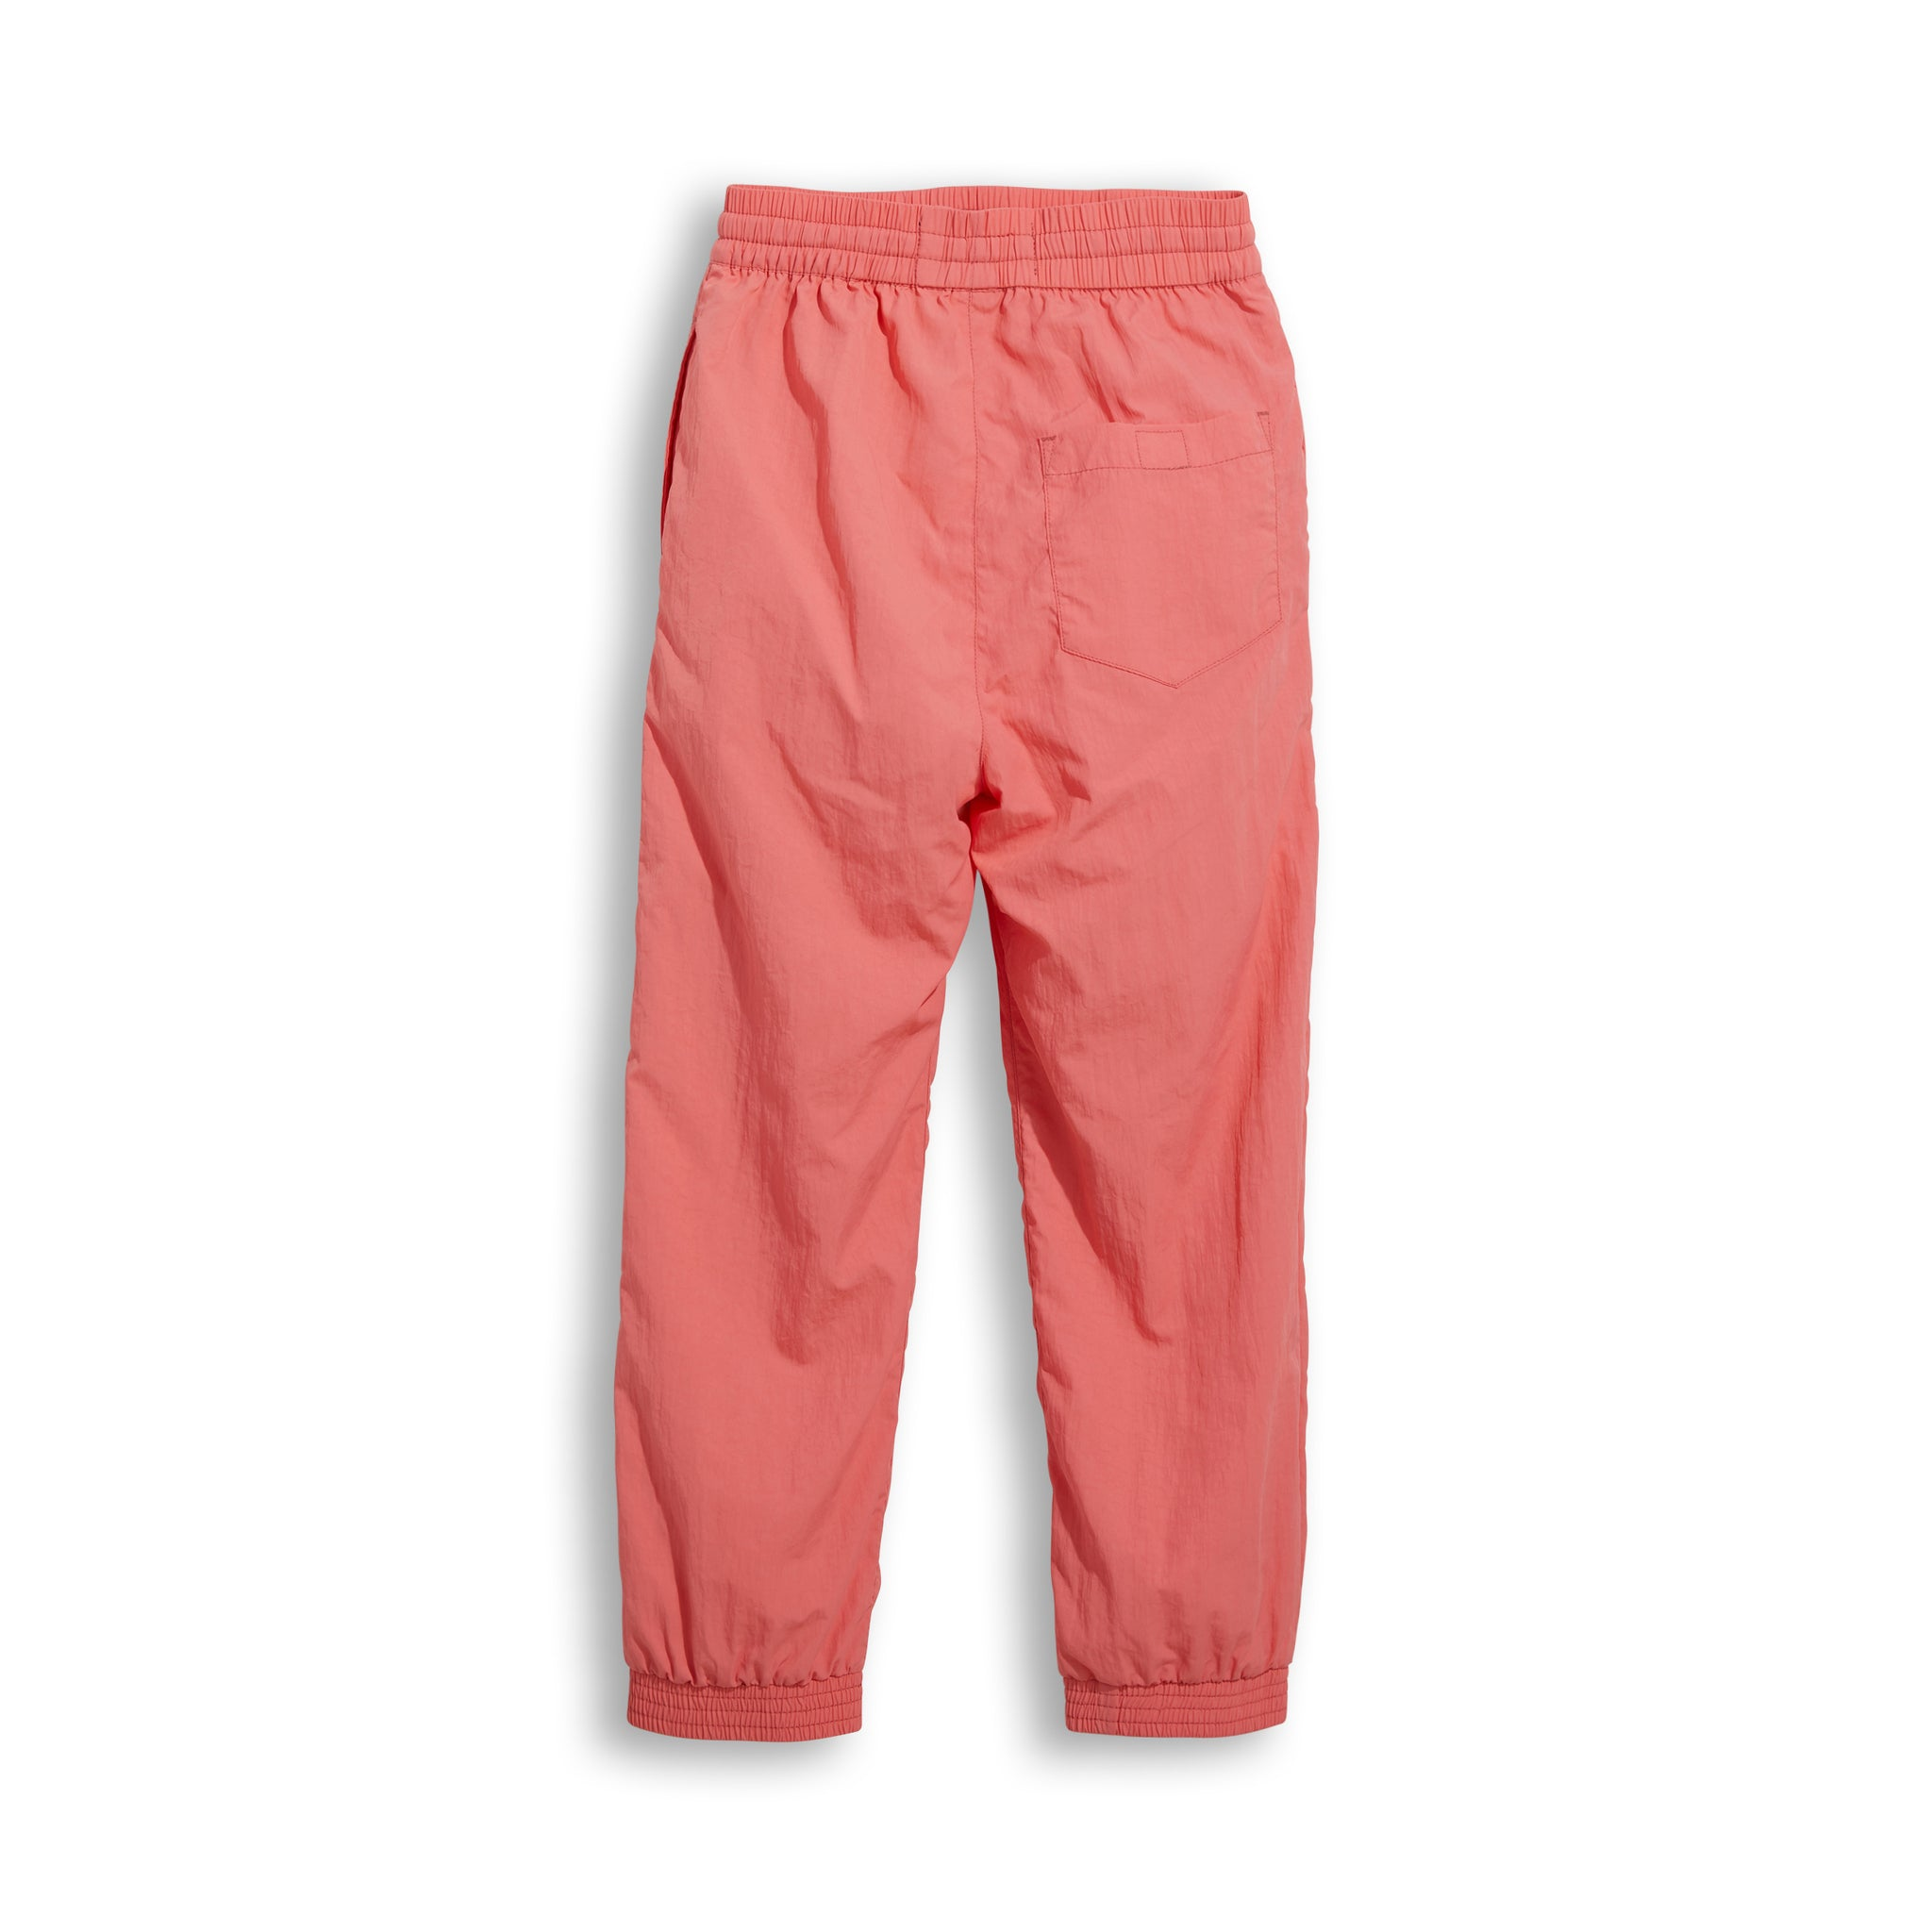 CONNIE Milky Pink - Track Pants 2